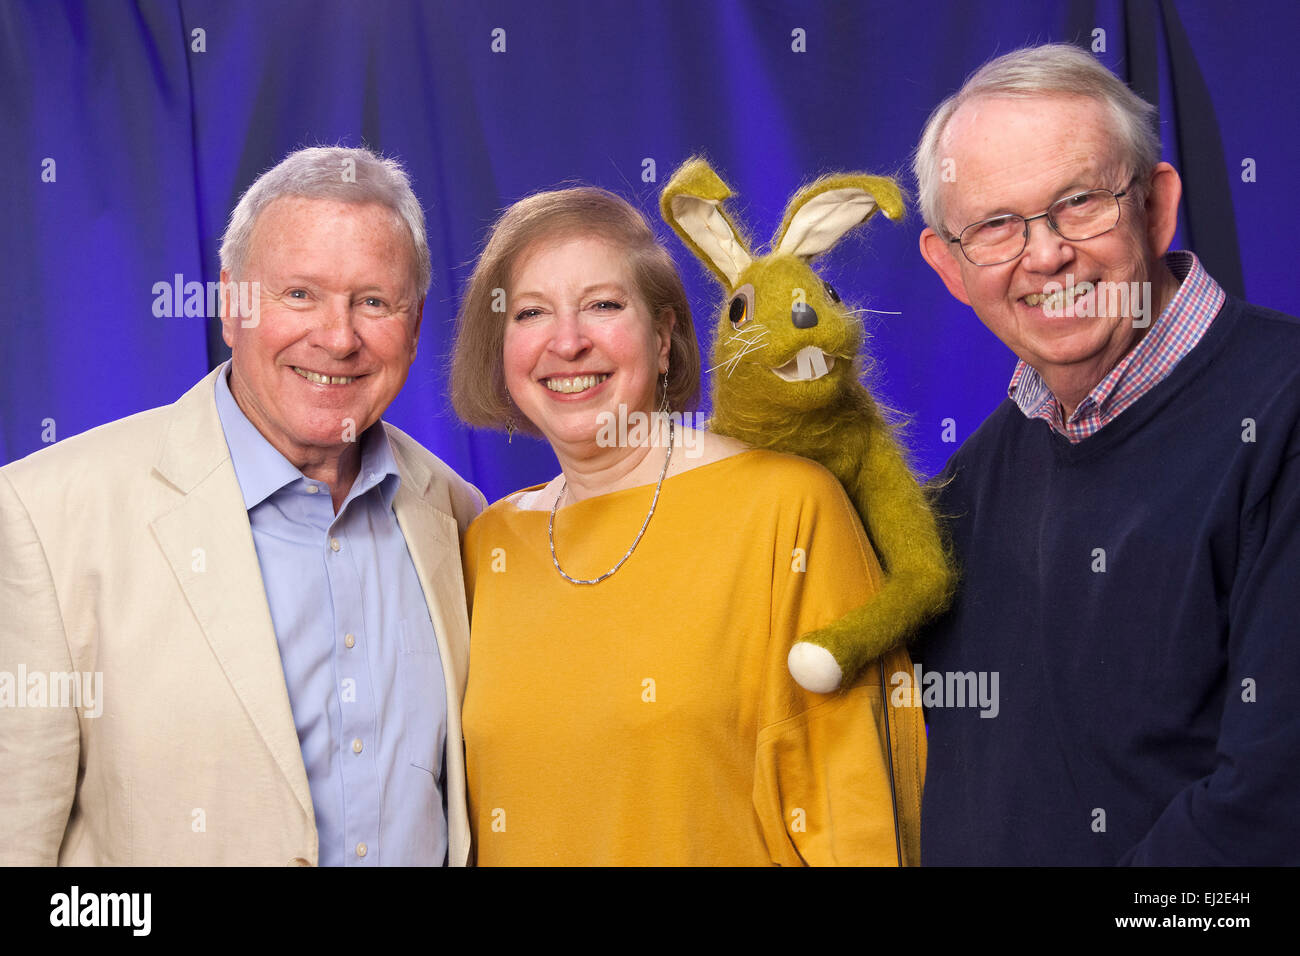 Walsall, West Midlands, UK. 20 March 2015. David Hamilton (L) with writer performer Gail Renard and puppeteer Nigel - Stock Image